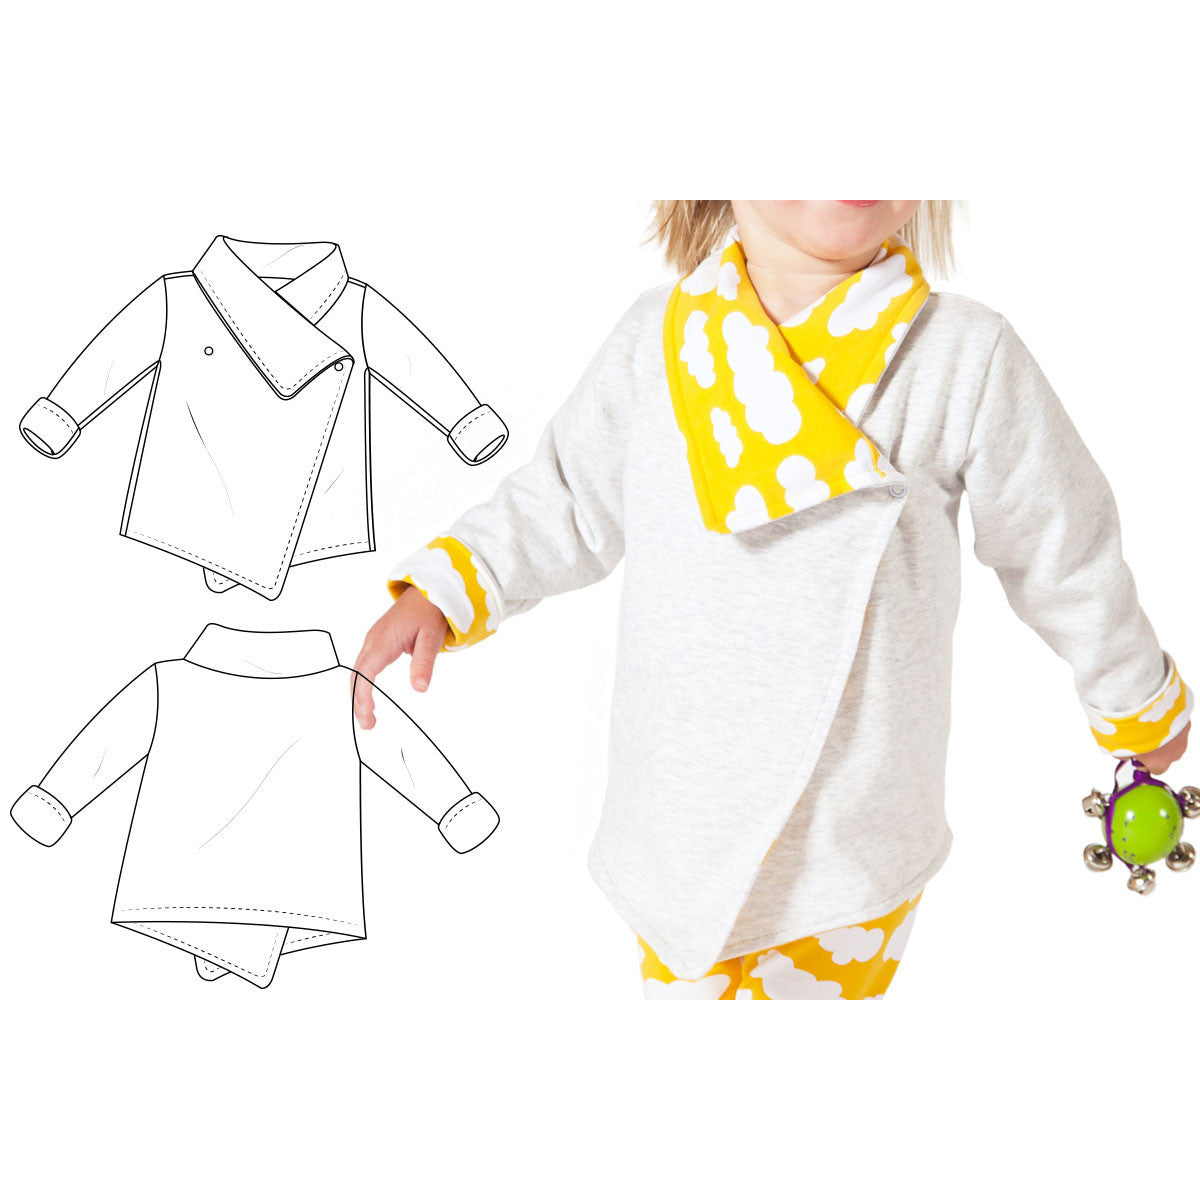 Wrap cardigan sewing pattern for babies and toddlers brindille reversible wrap cardigan 59 jeuxipadfo Images